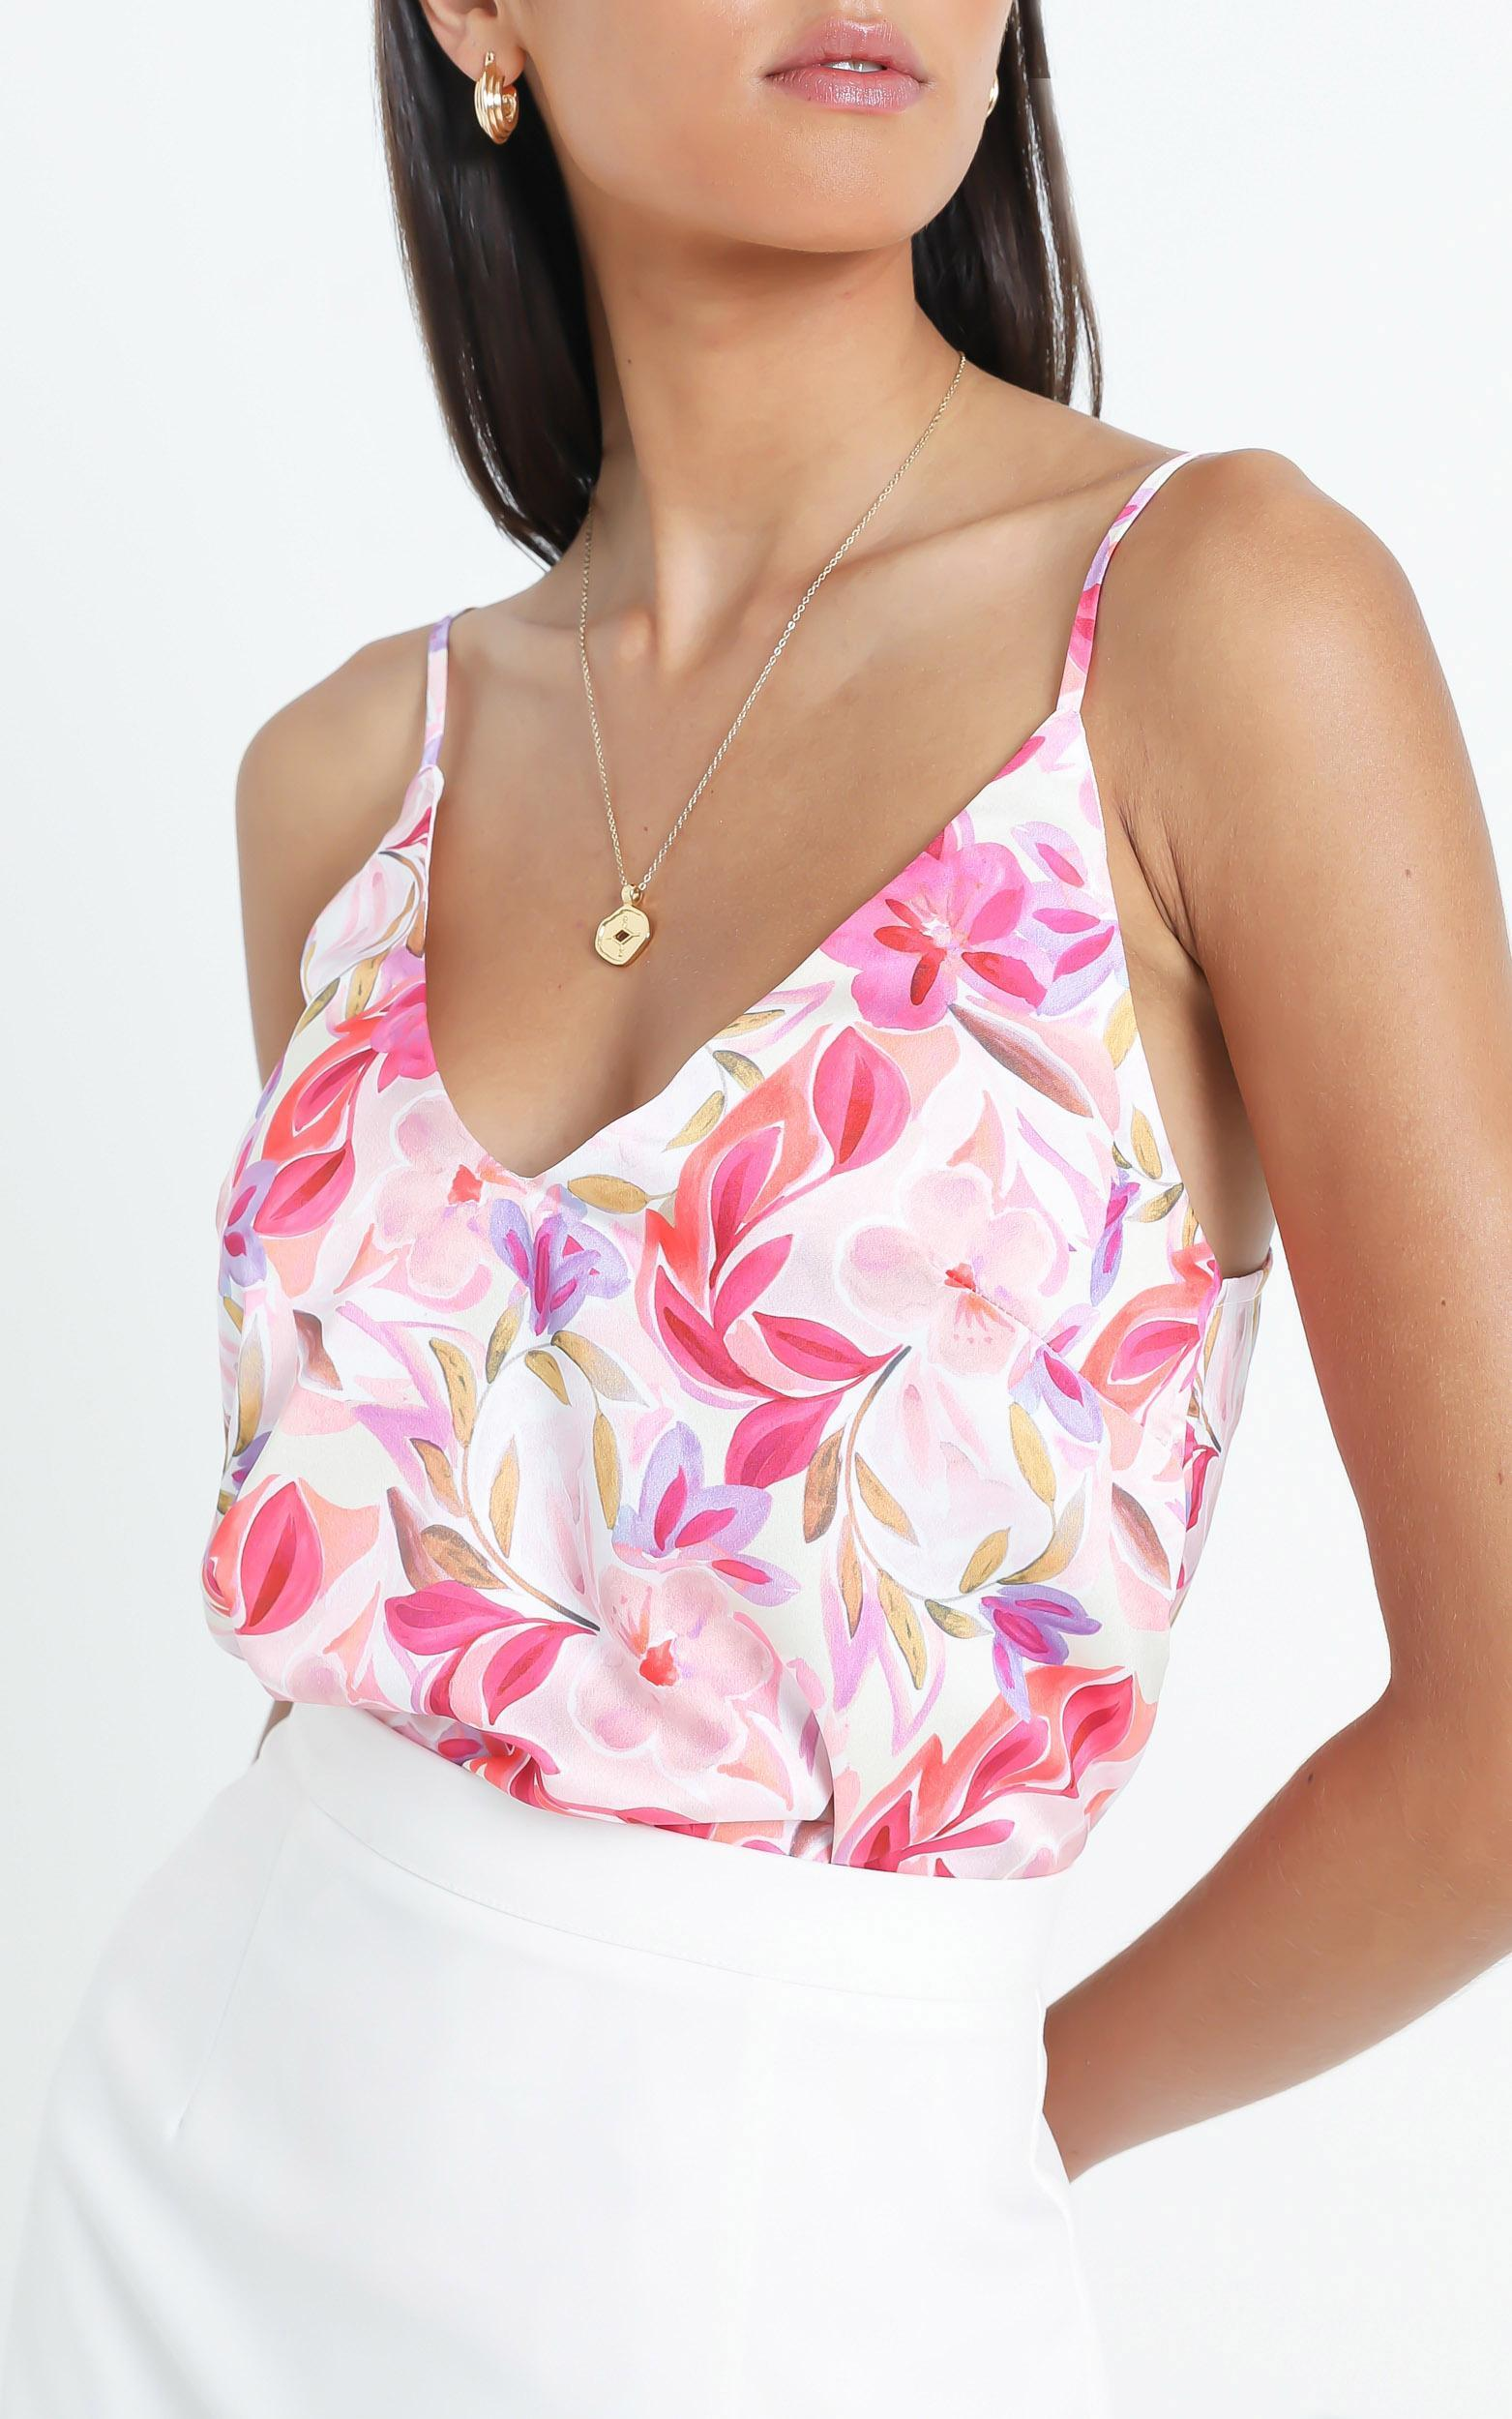 My Only Sunshine Top In Eventful Bloom - 6 (XS), Multi, hi-res image number null